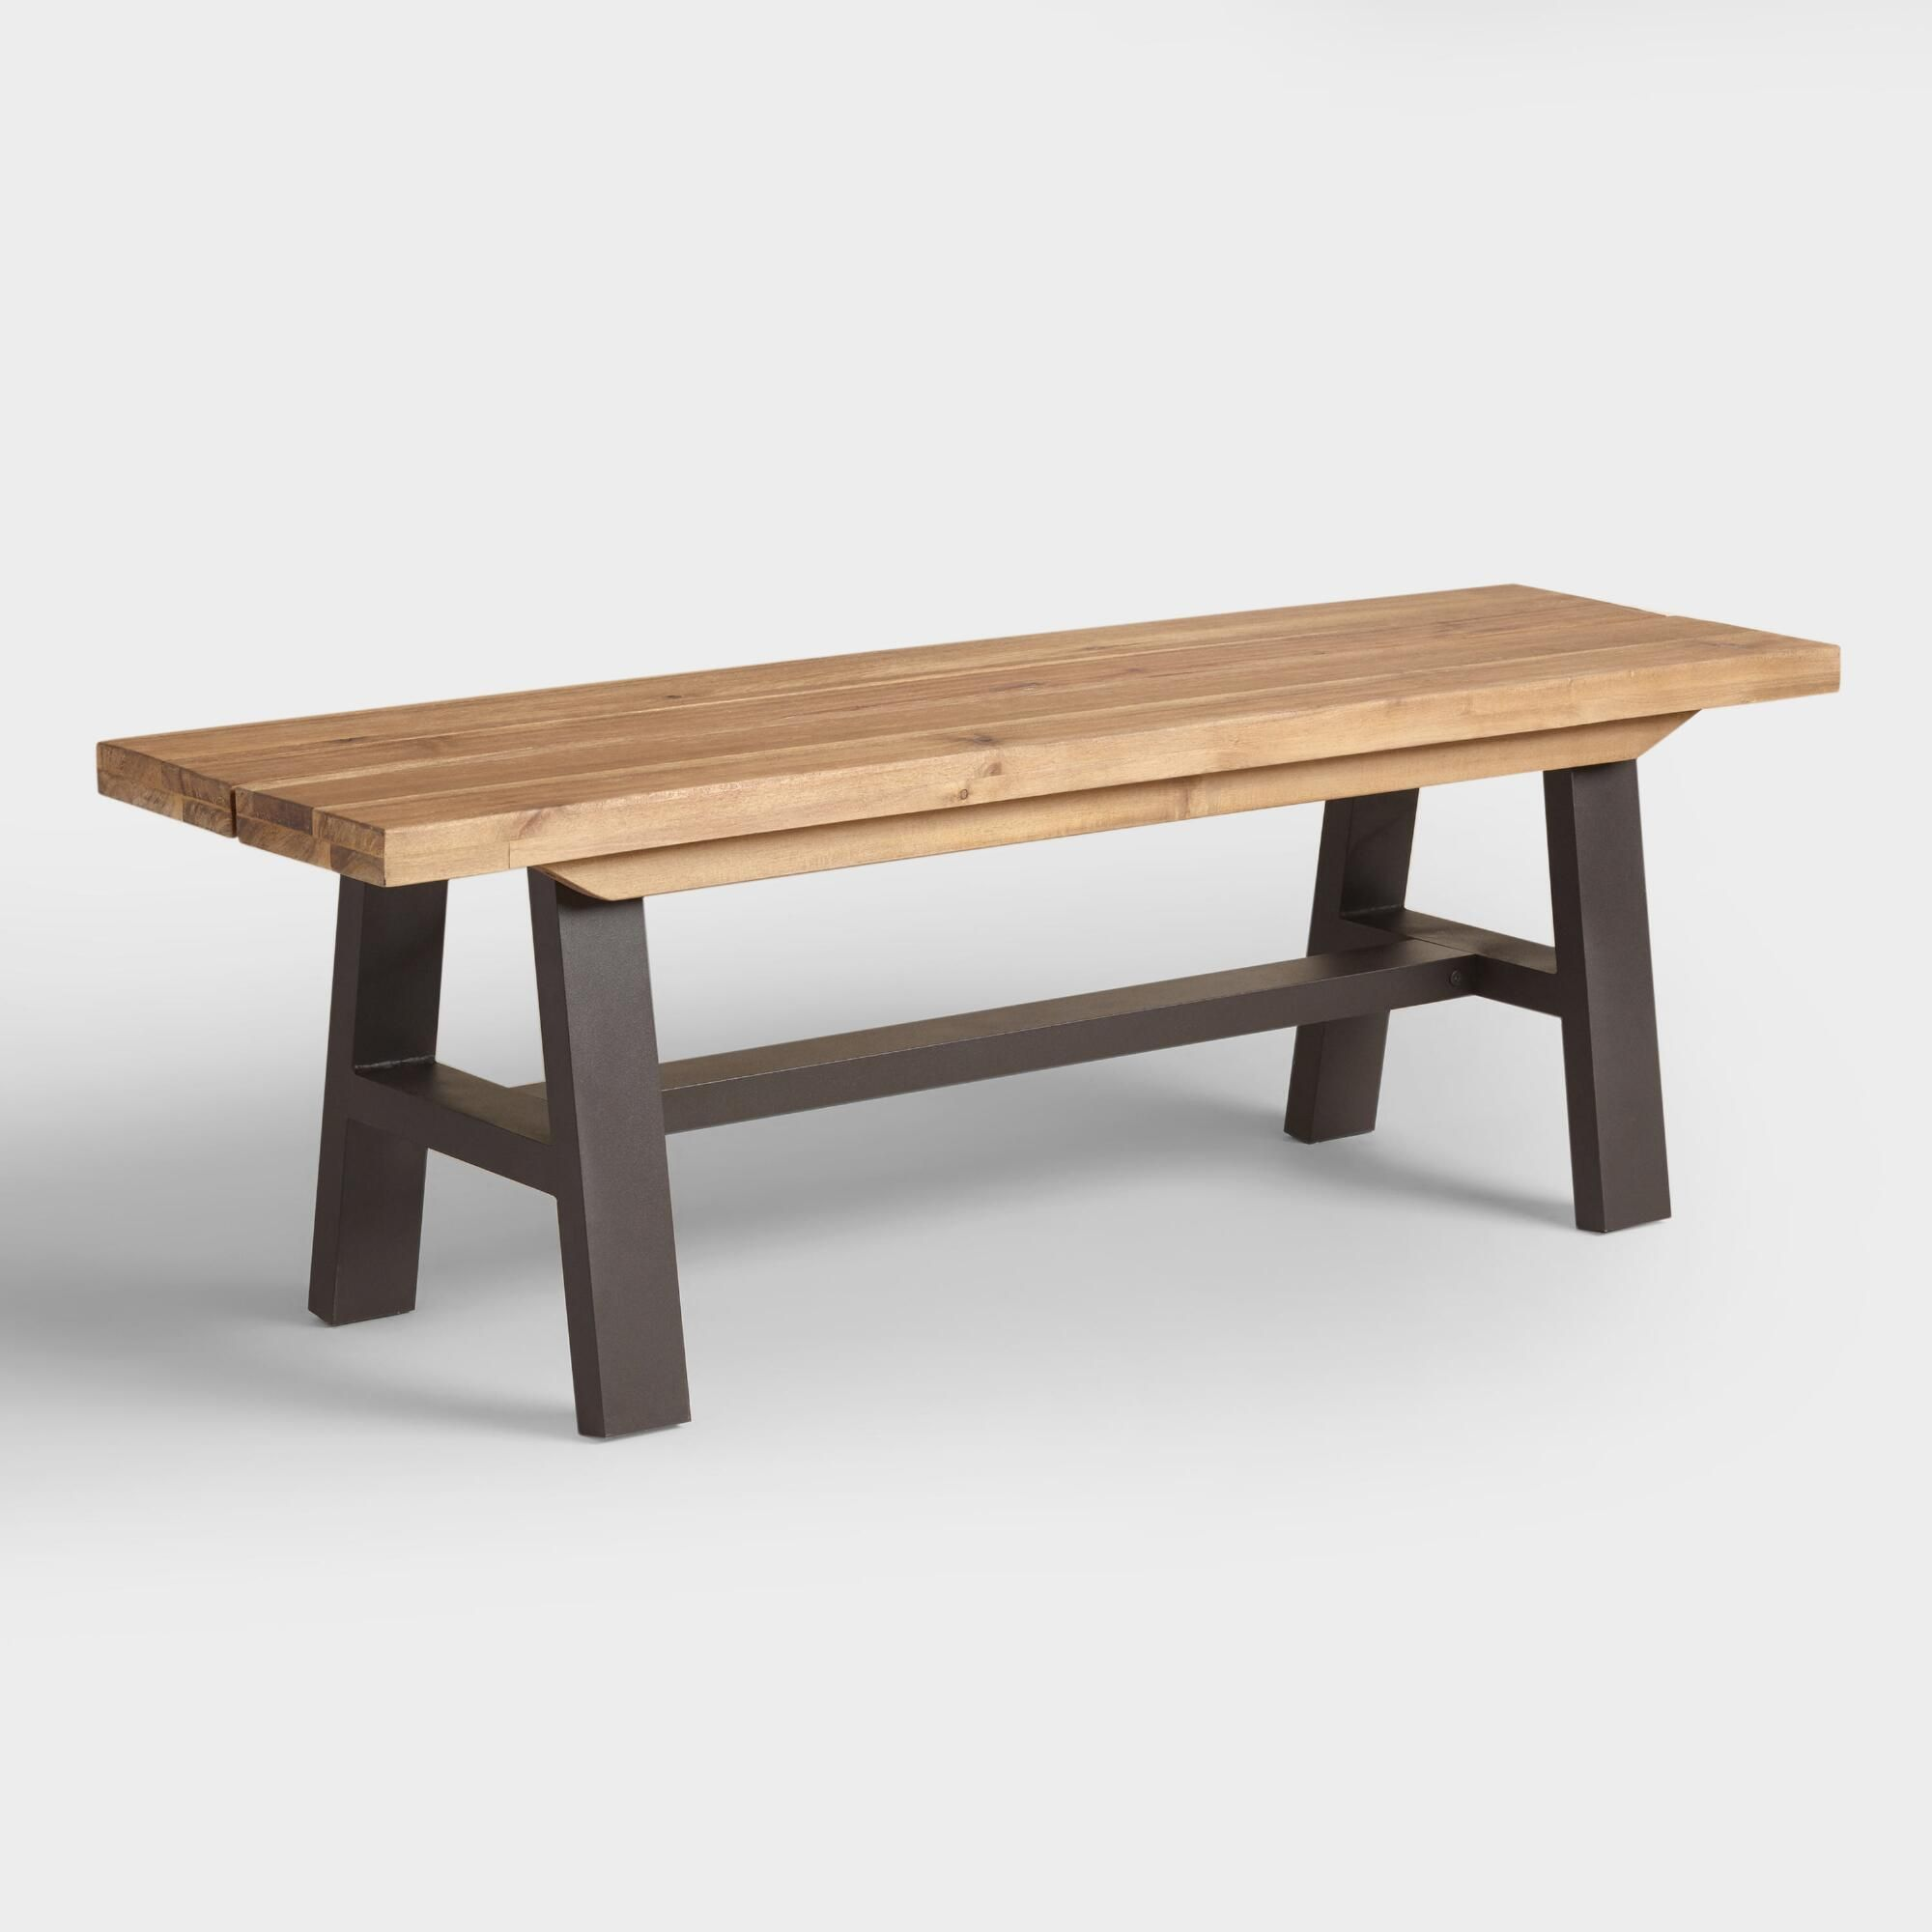 Enjoy Alfresco Meals Gathered On Our Rustic Dining Bench. It Features An  Aluminum A Frame Made To Withstand The Elements And A Distressed Acacia  Wood Seat ...